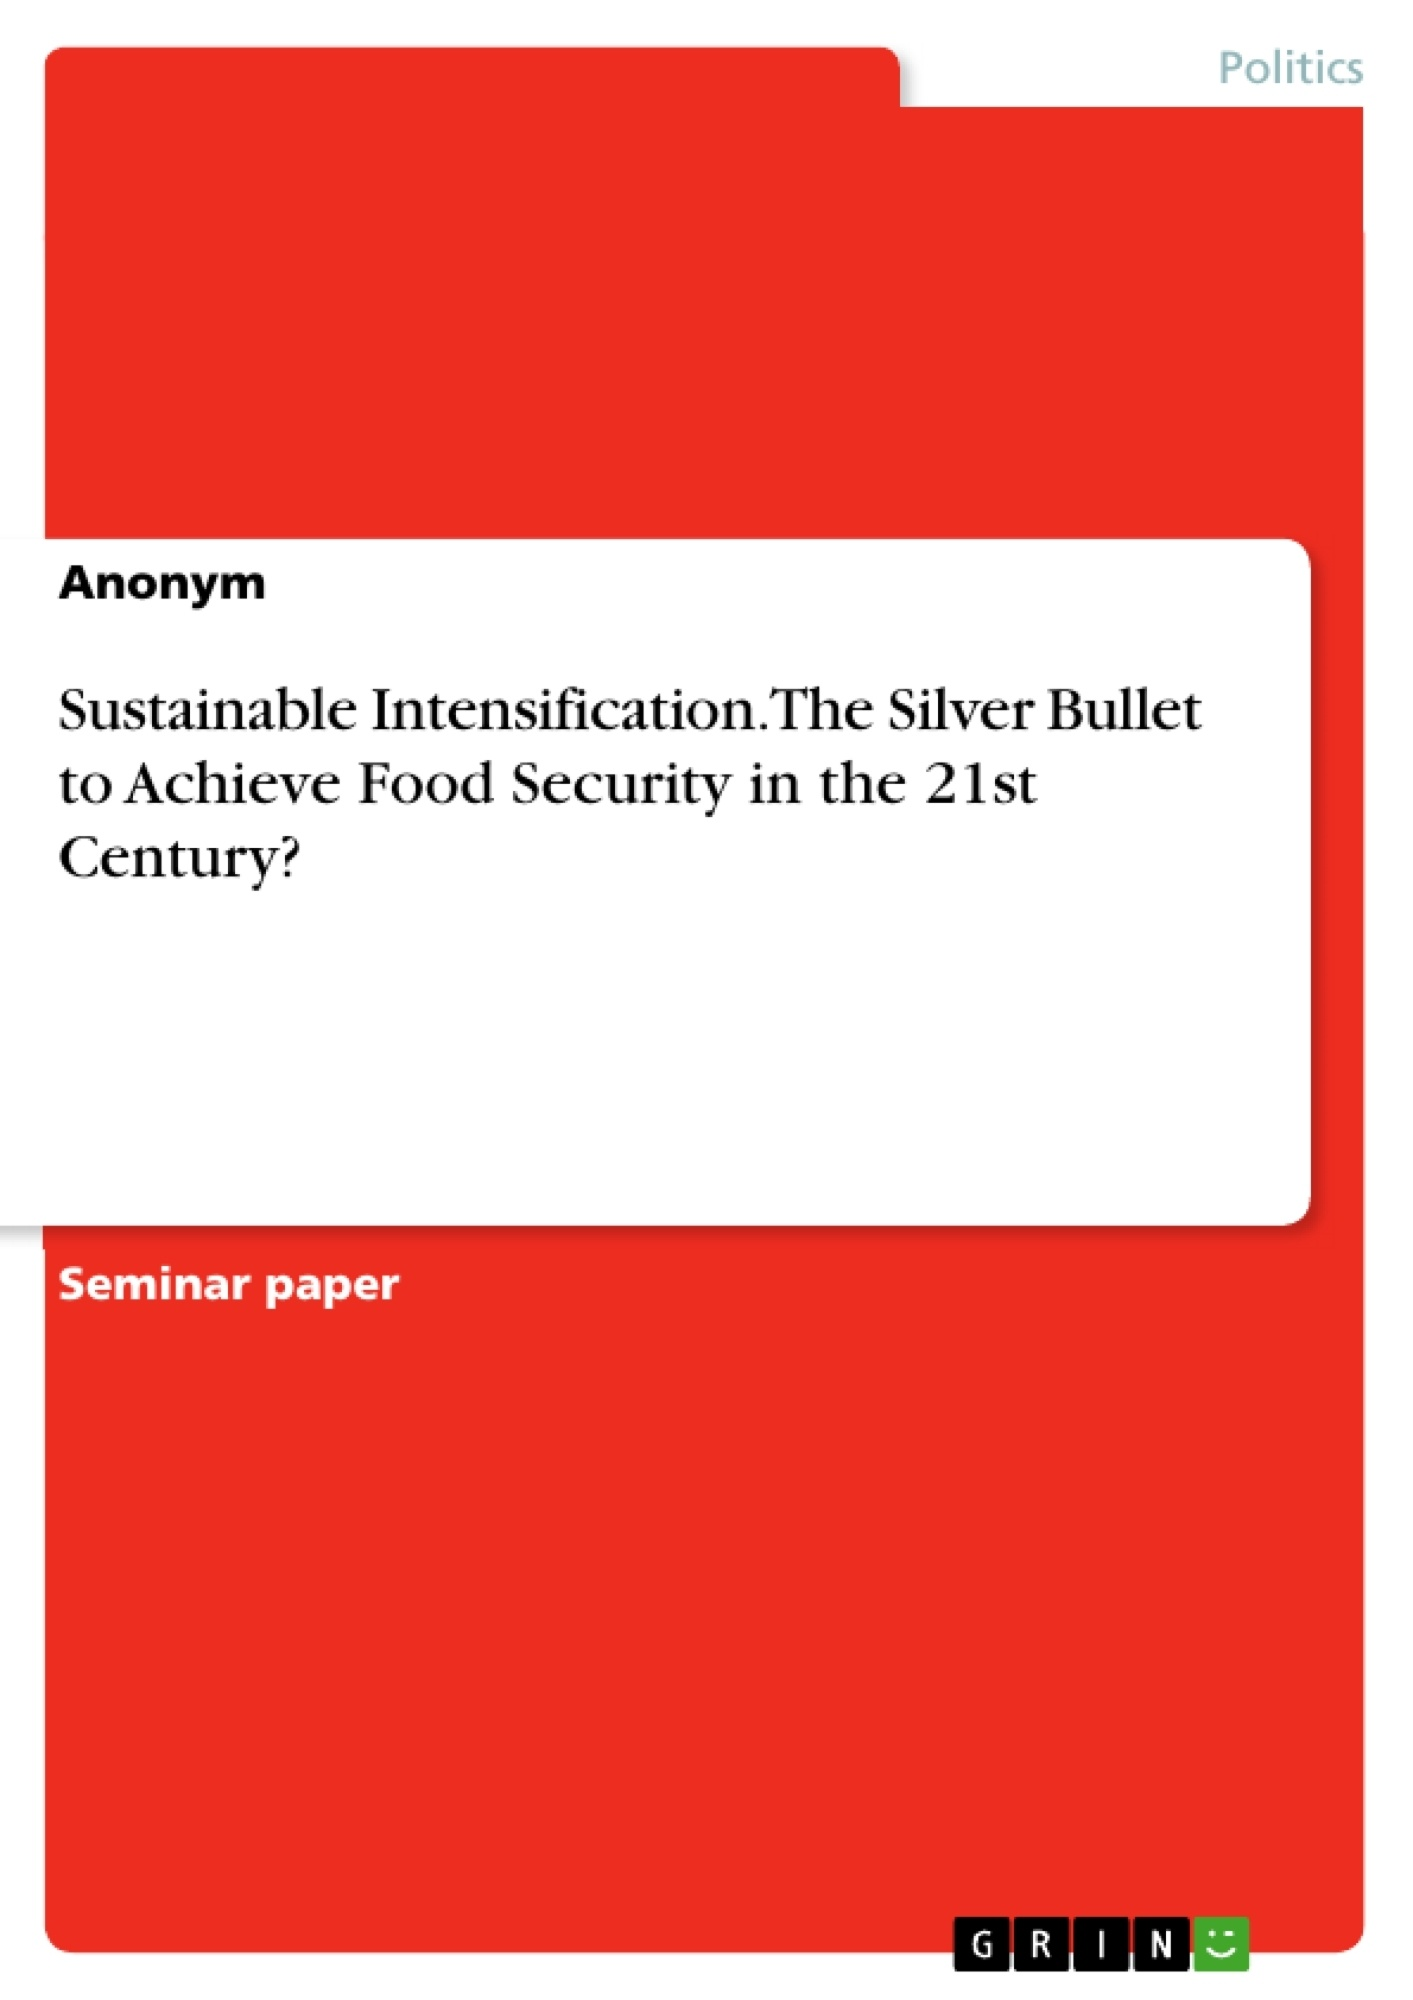 Title: Sustainable Intensification. The Silver Bullet to Achieve Food Security in the 21st Century?